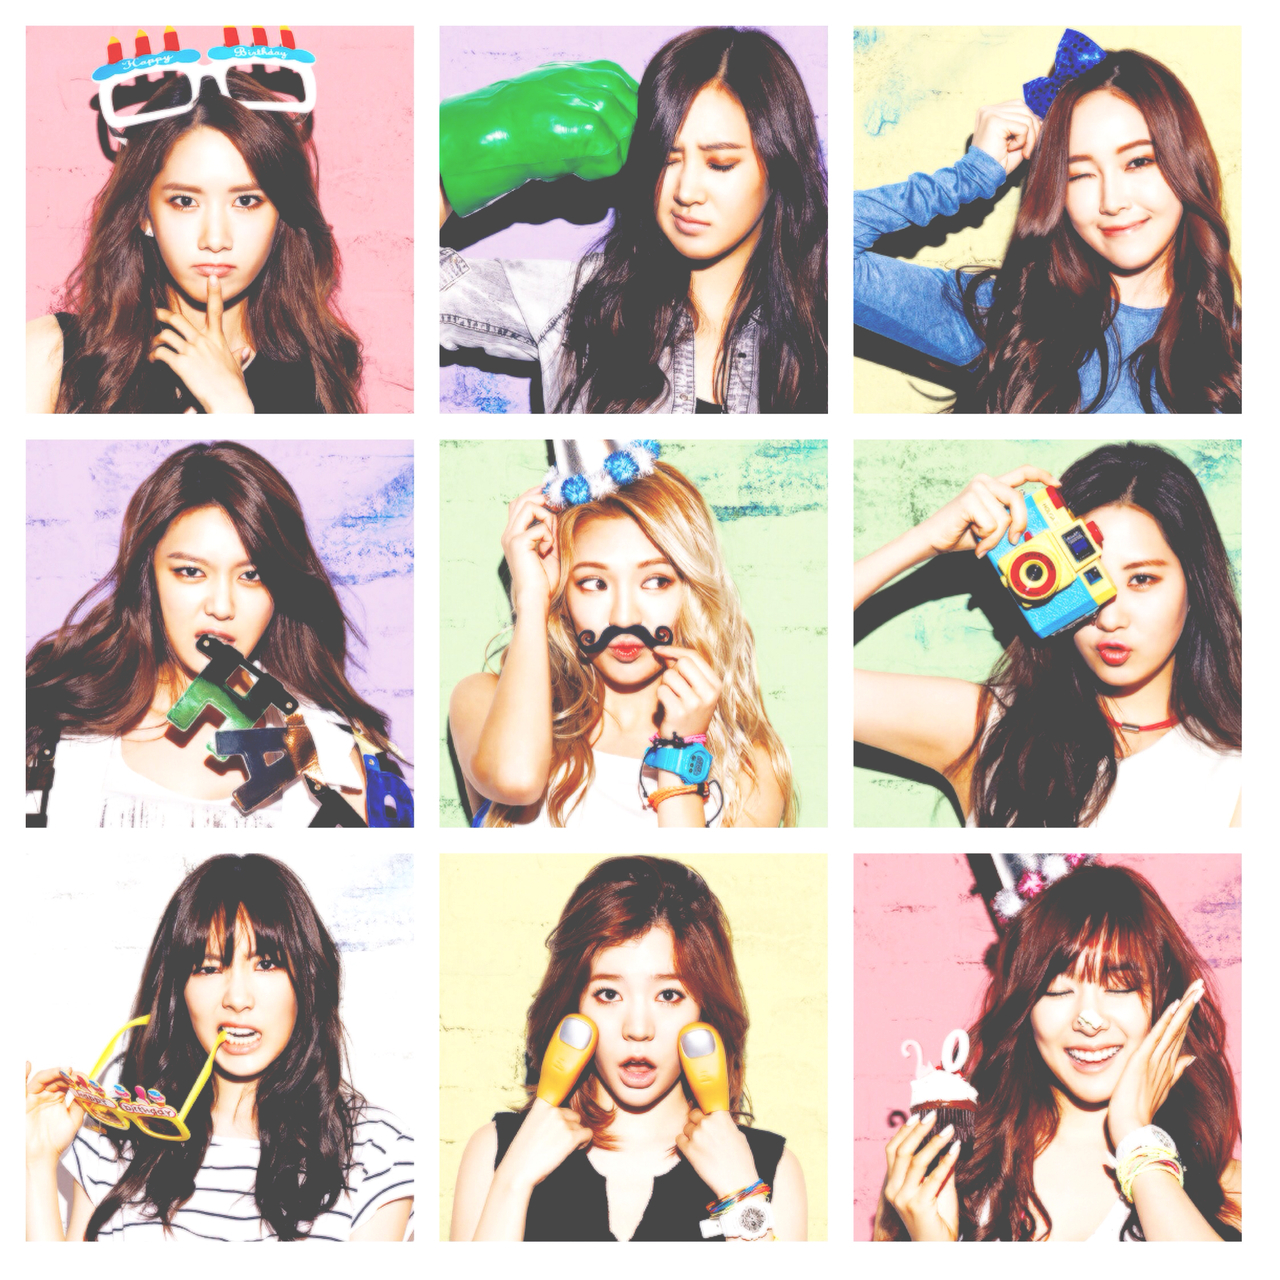 choi sooyoung, gg, girl generation and girls generation